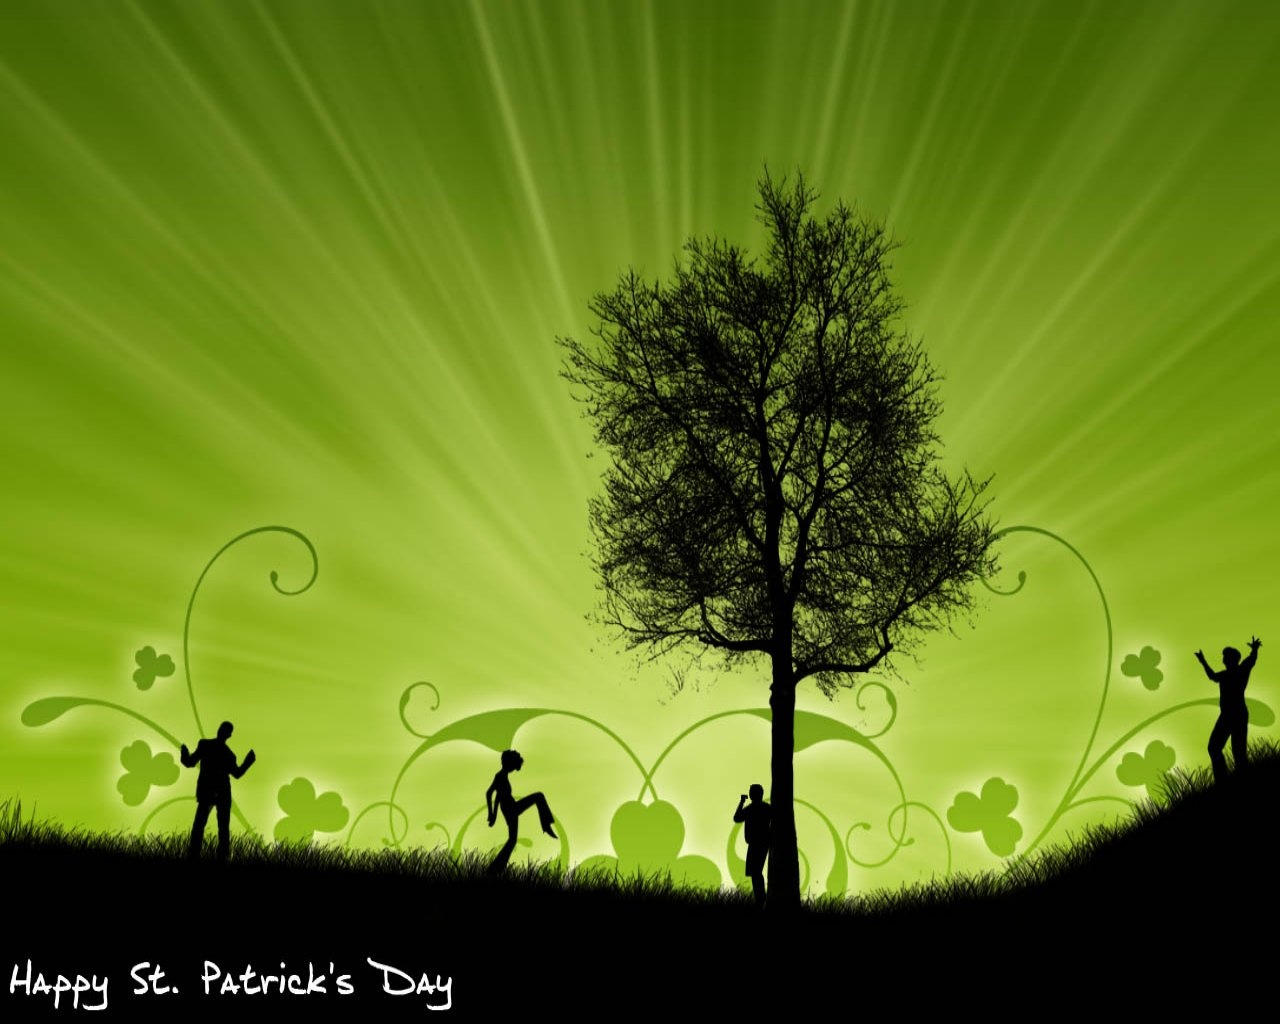 happy st patricks day wallpapersuggestcom wallpapers st patricks day 1280x1024